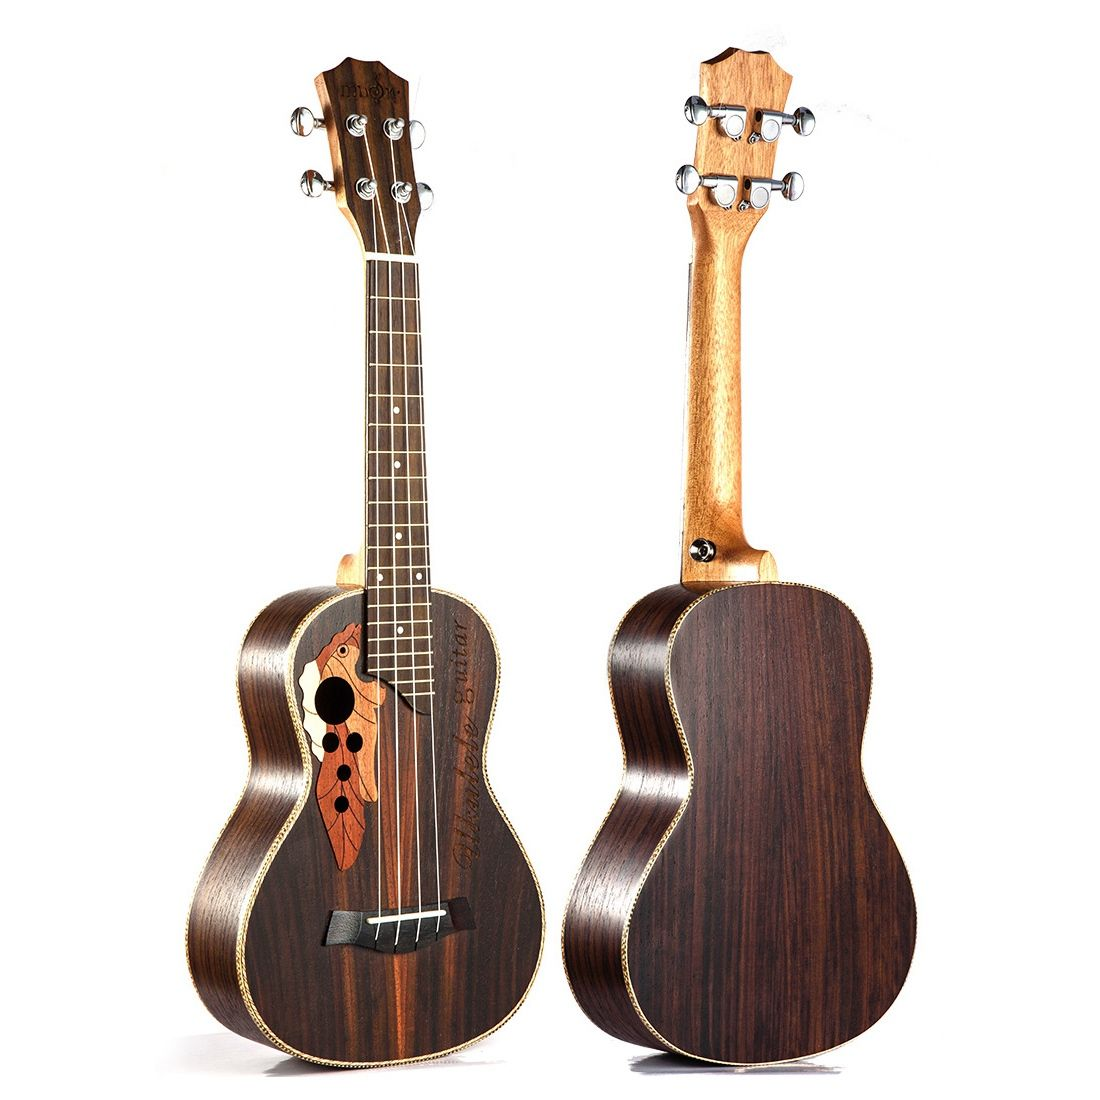 New Soprano Mini Hawaii Guitar Concert Ukulele 23 Inch Rosewood Uku Ukelele With 4 String Mini Hawaii Guitar Musical Instruments